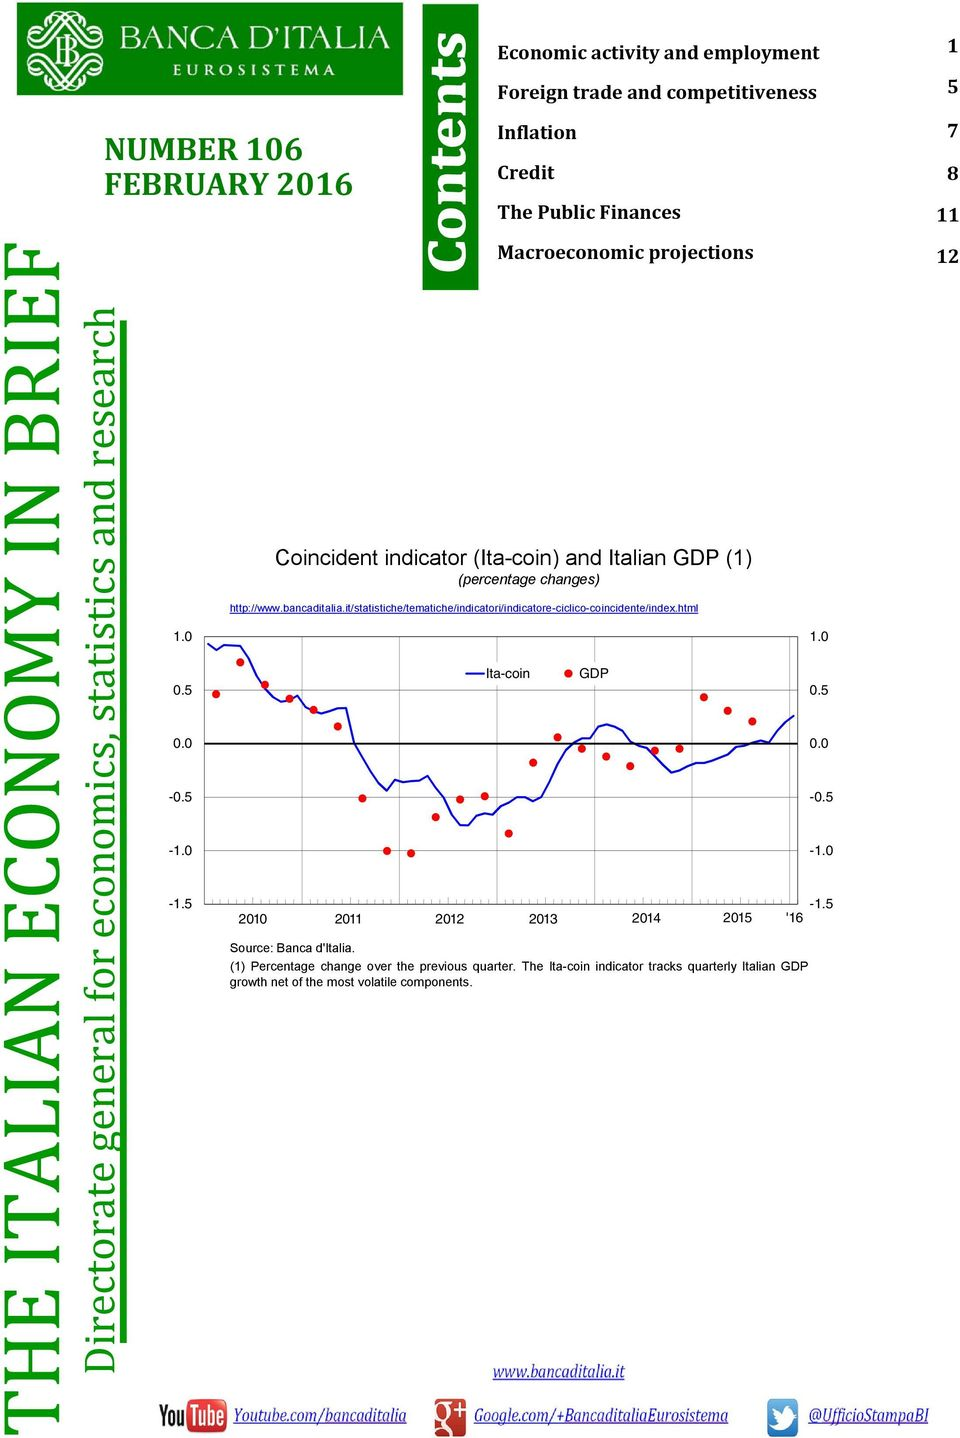 -1. Coincident indicator (Ita-coin) and Italian GDP (1) (percentage changes) http://www.bancaditalia.